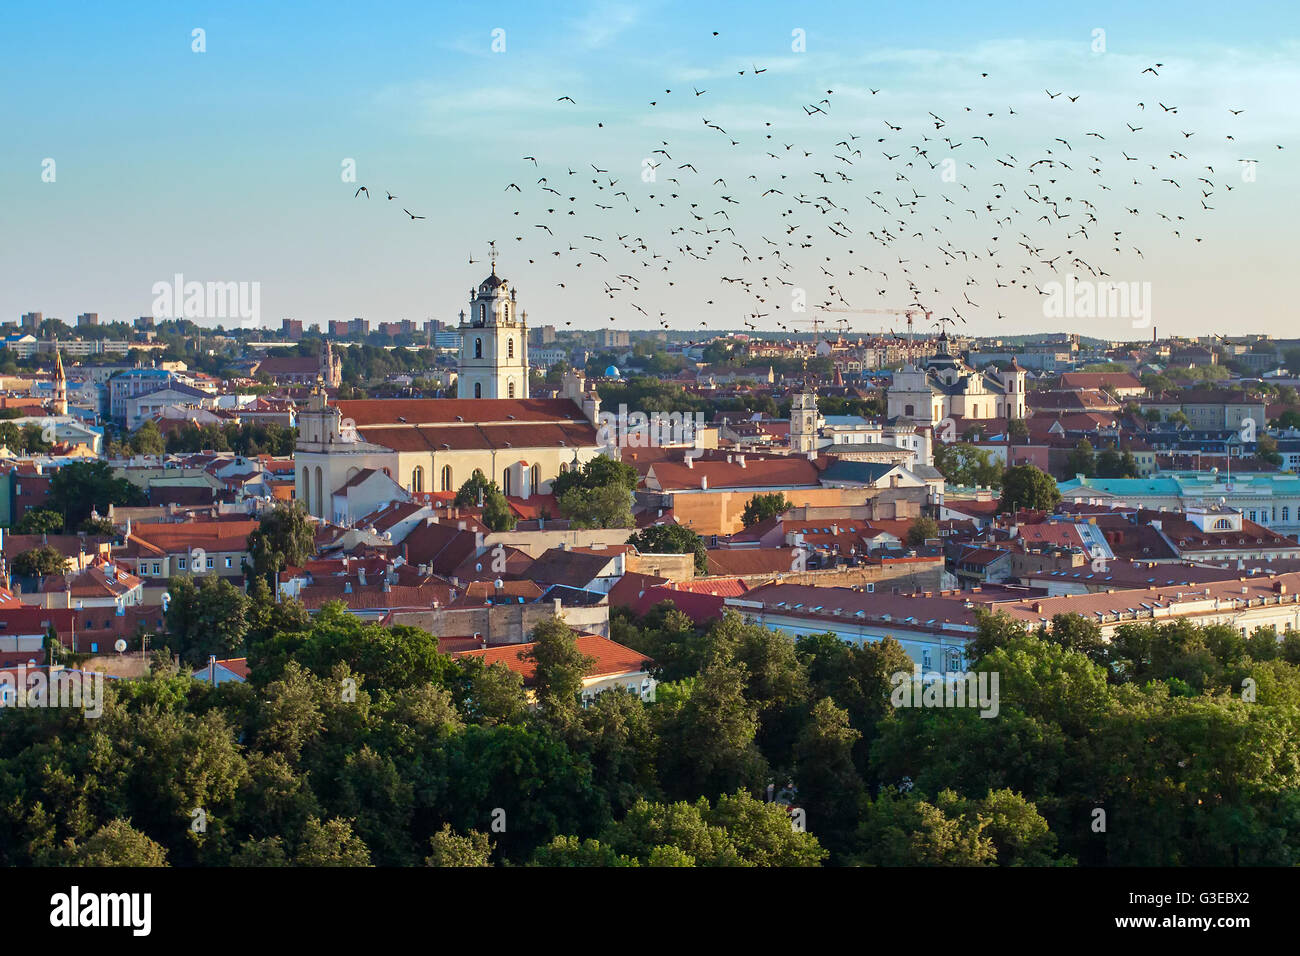 Summer in Vilnius, city center downtown view, Lithuania - Stock Image